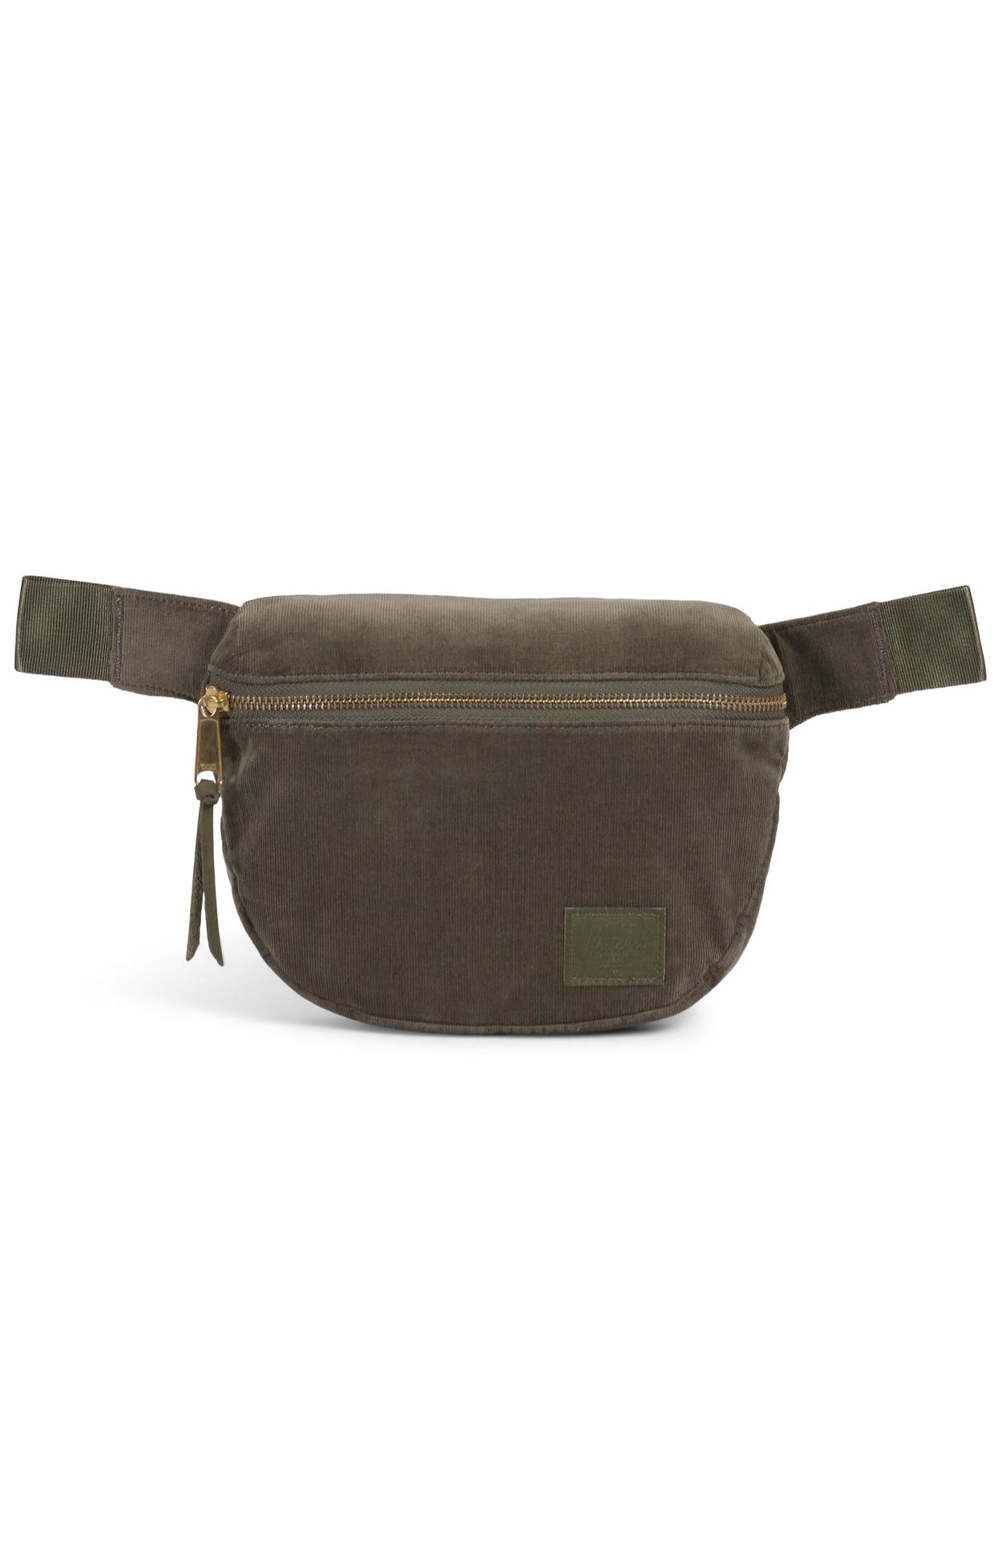 Fifteen Hip Pack - Ivy Green